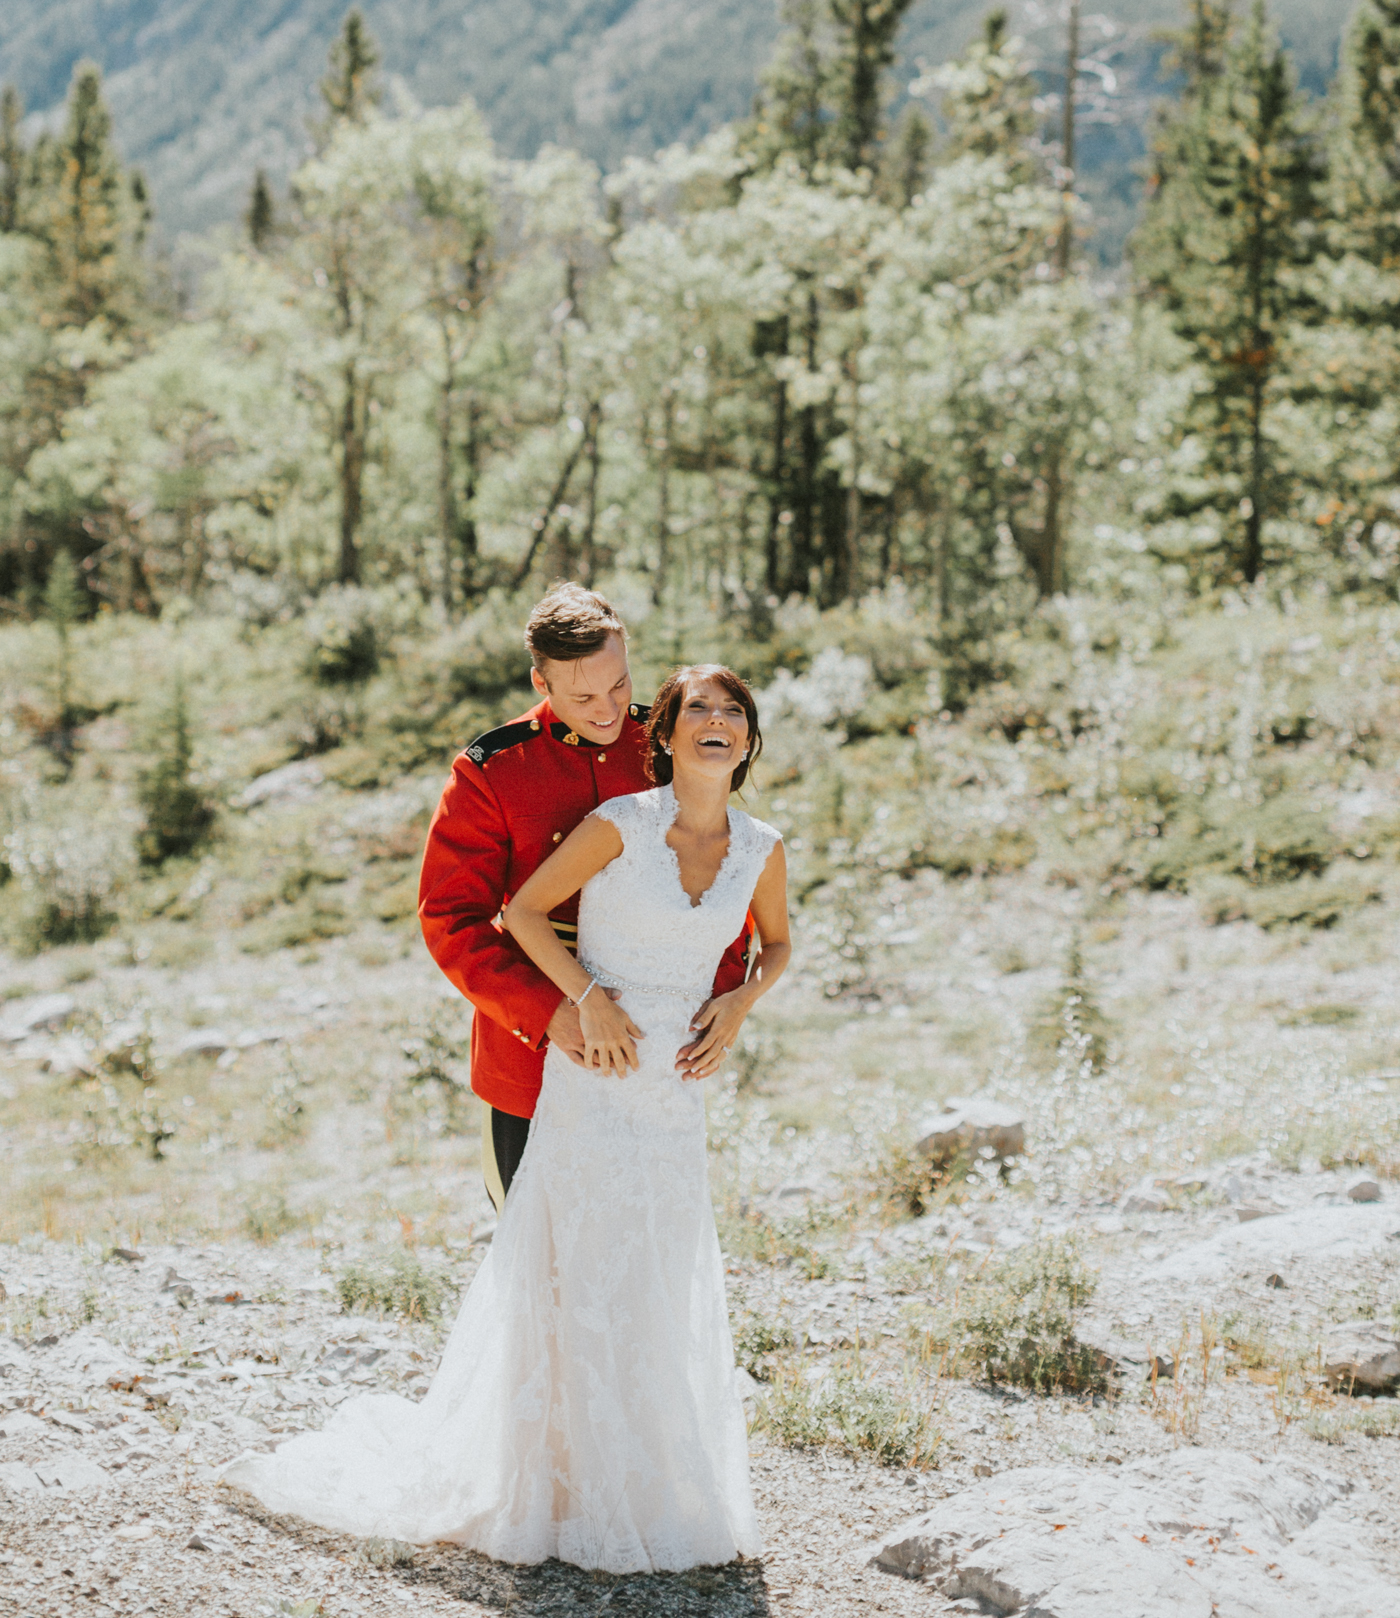 Elopement wedding pricing banff